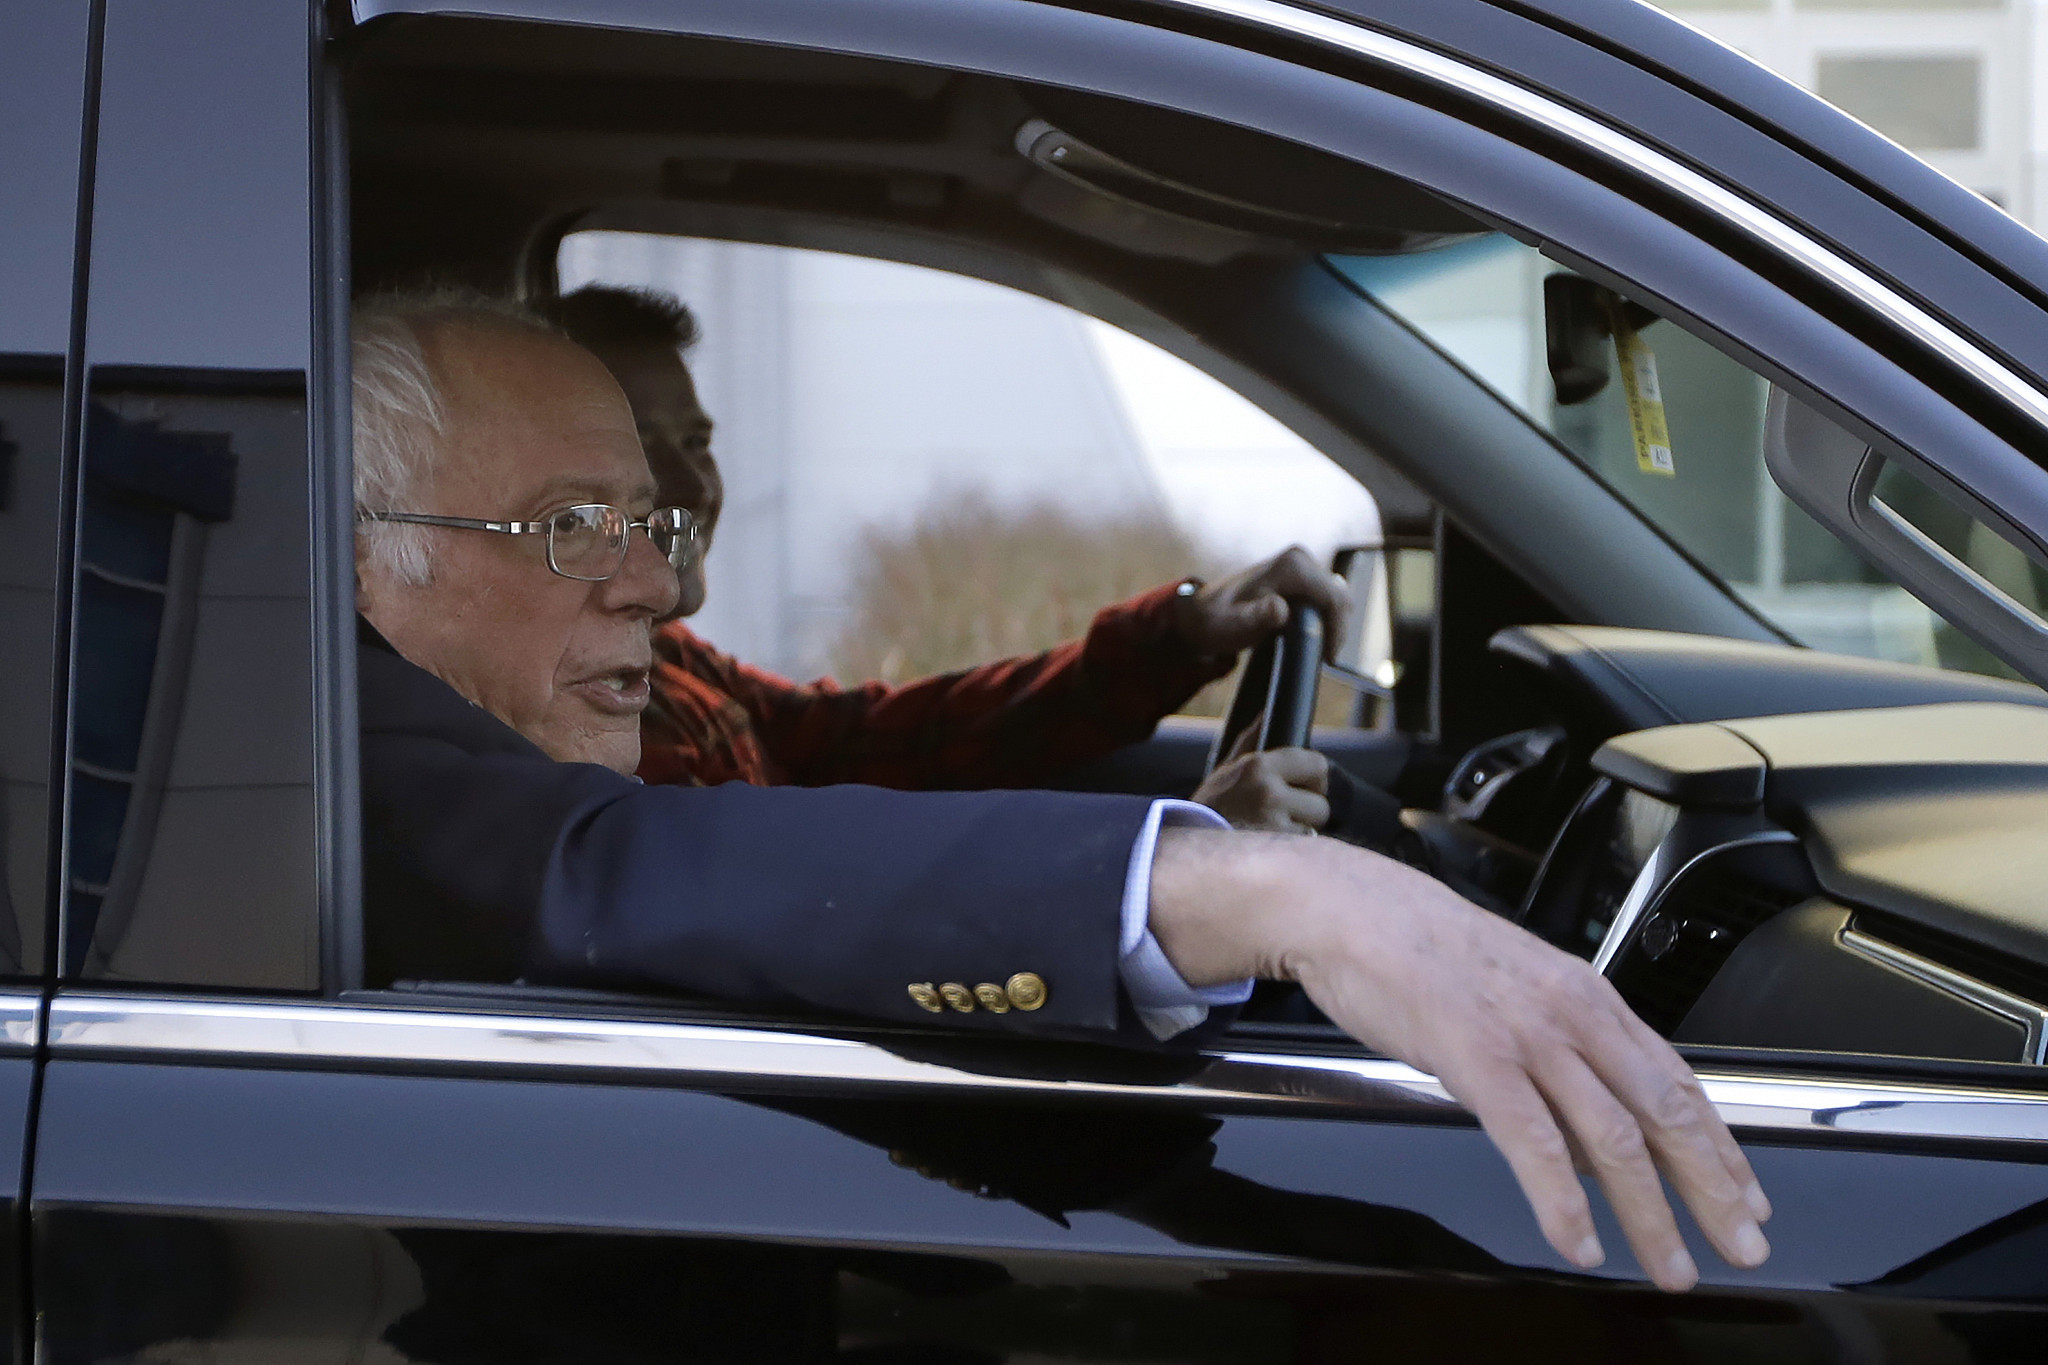 Democratic presidential candidate Sen. Bernie Sanders I-Vt. departs Burlington International Airport after disembarking from a plane in South Burlington Vt. on Saturday Oct. 5 2019. Sanders is back home in Vermont after being treated for a heart att